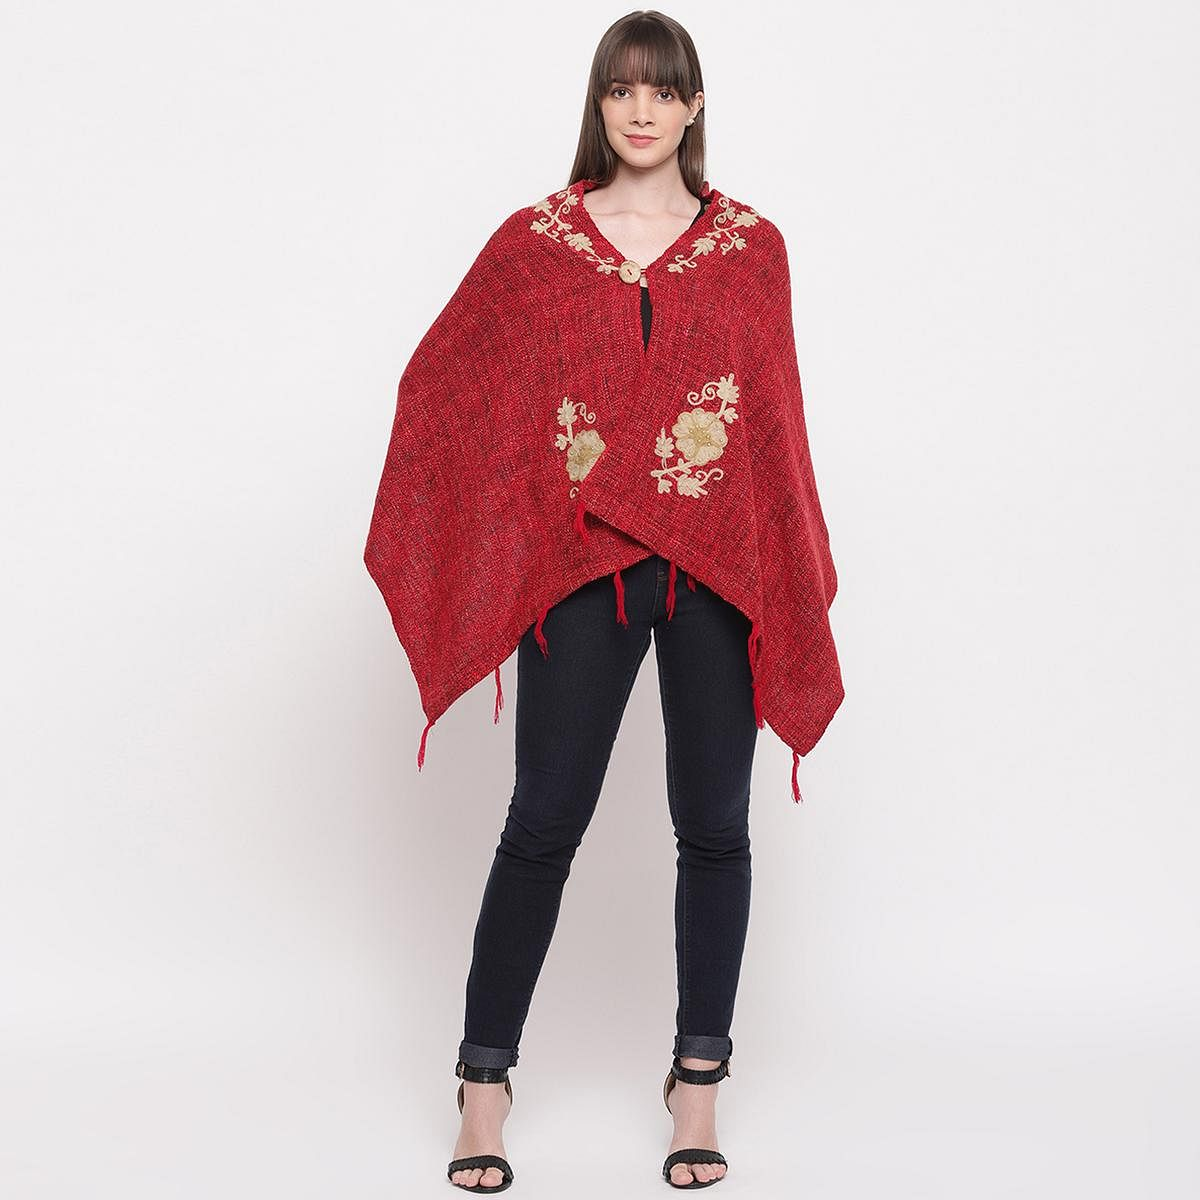 HK Colors Of Fashion - Red Colored Casual Woolen Shrug